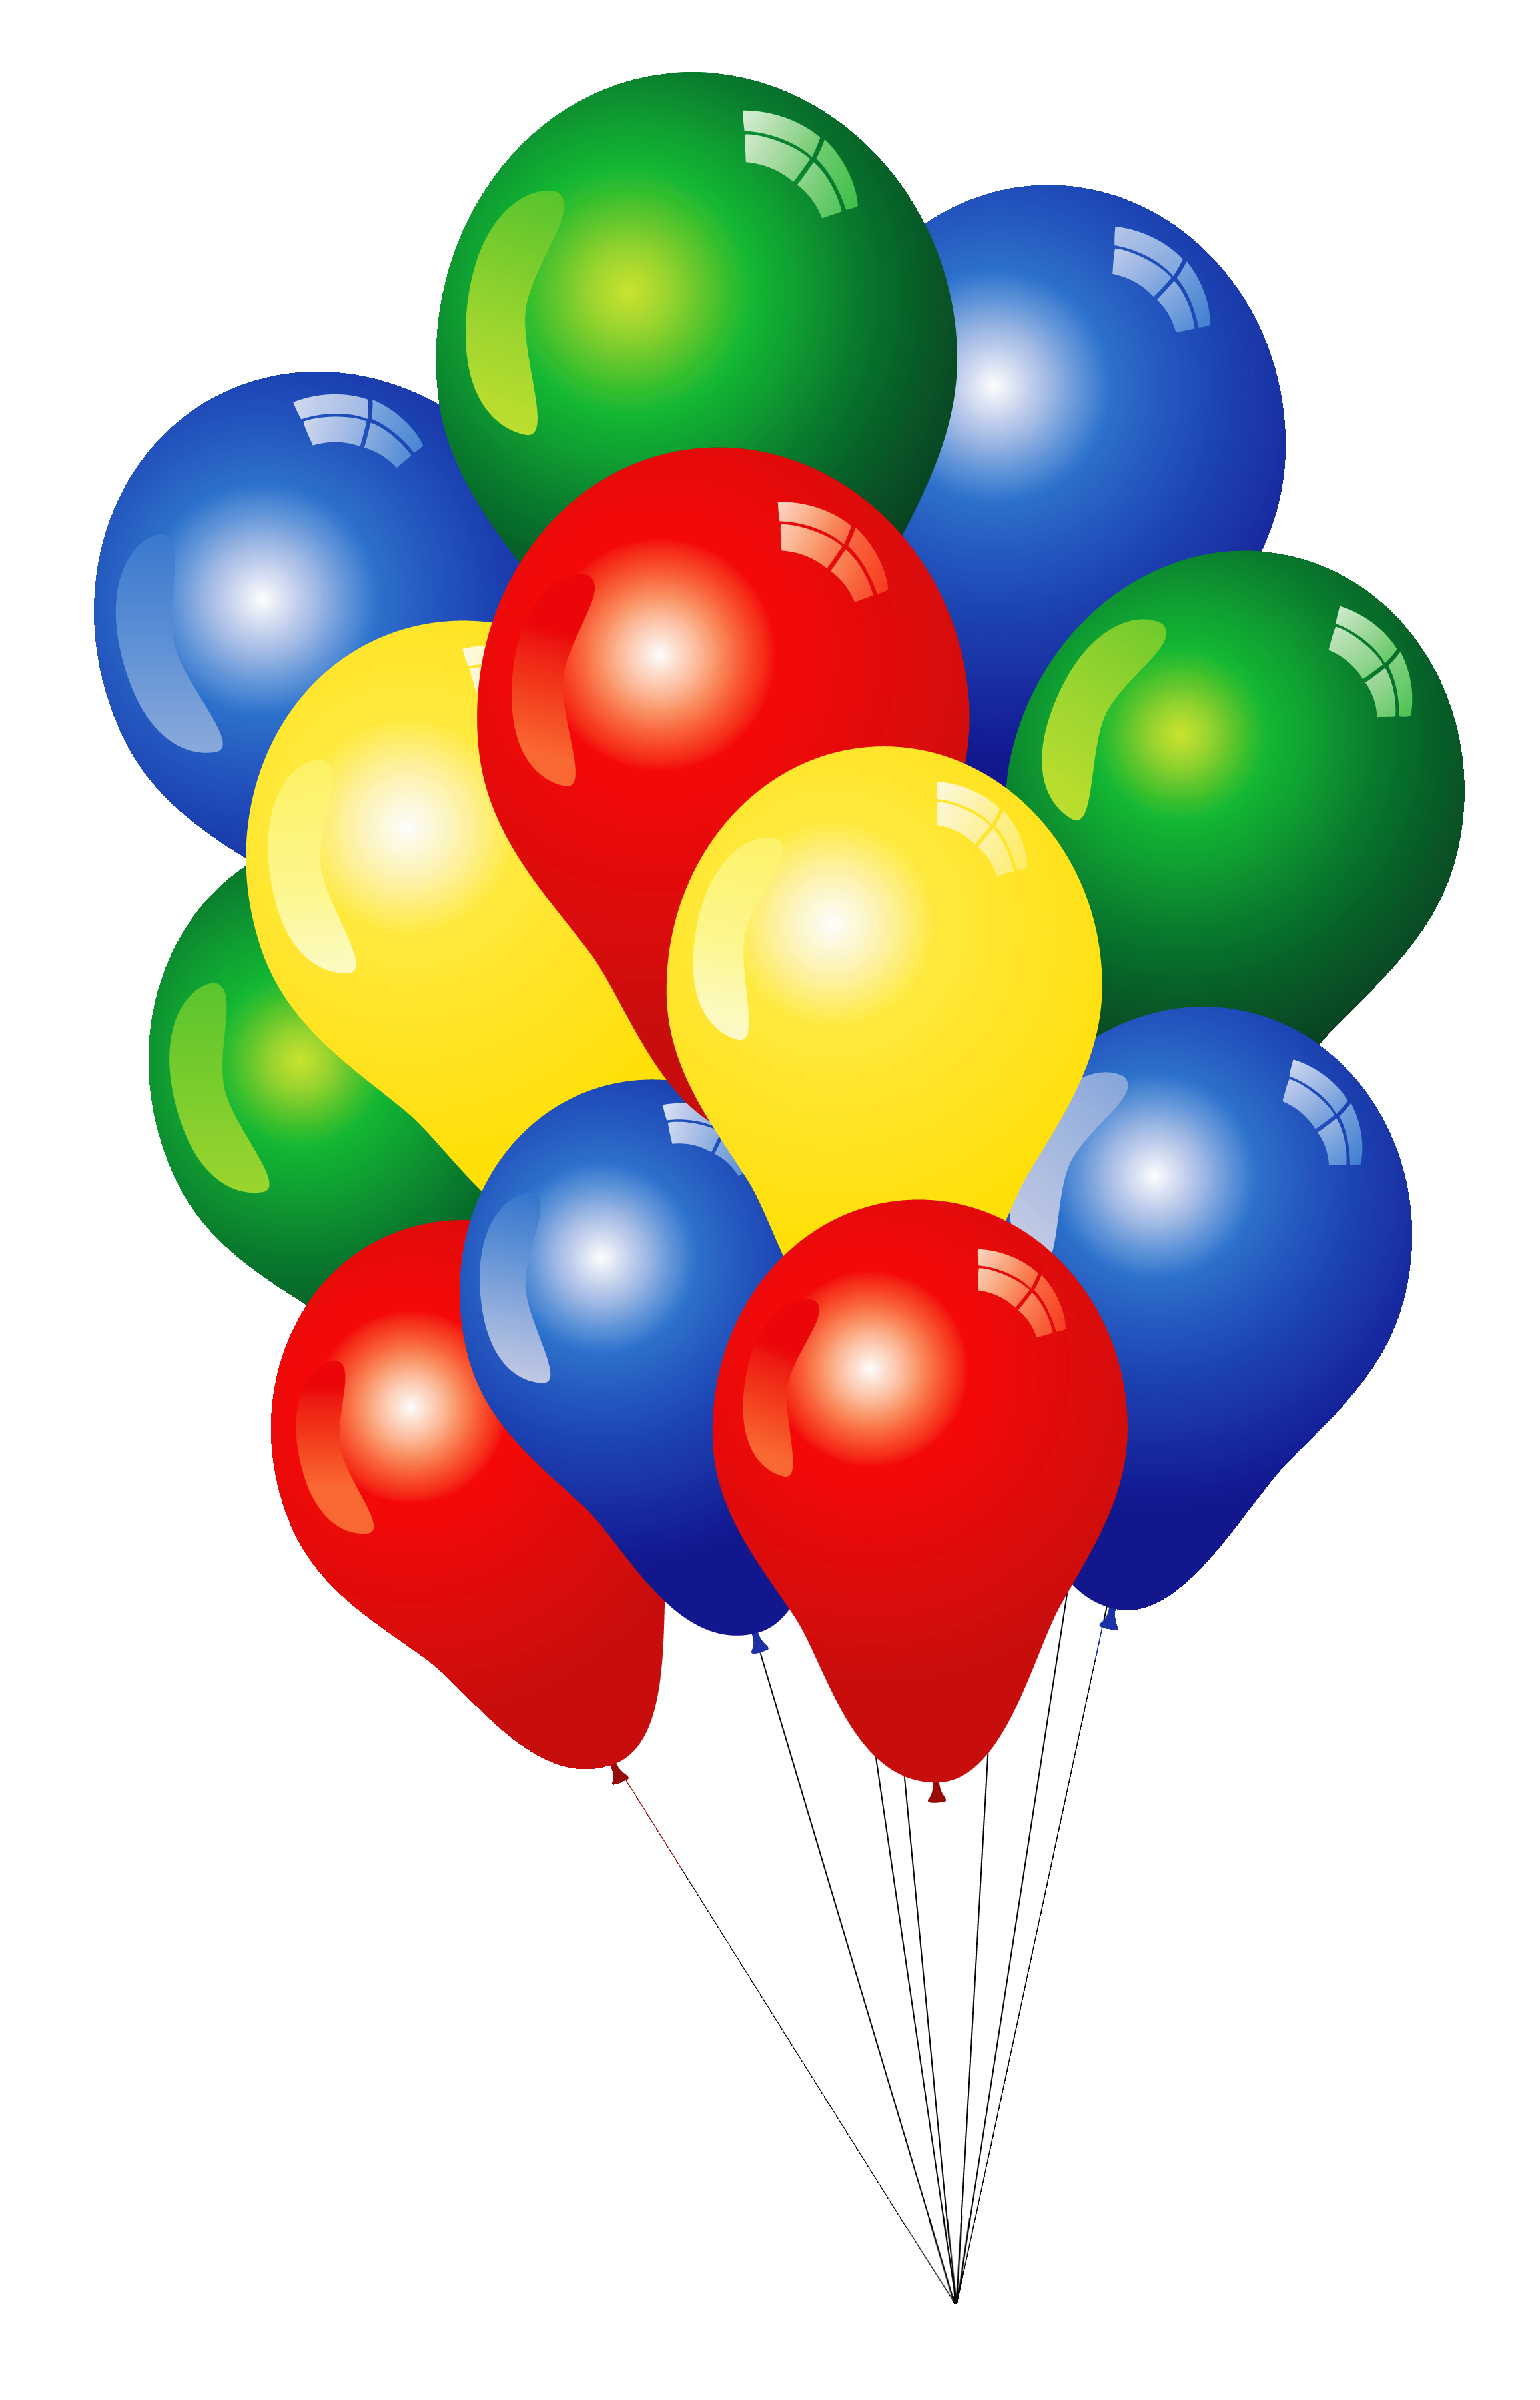 Balloons pictures clipart clip library download Free Balloons Cliparts, Download Free Clip Art, Free Clip Art on ... clip library download